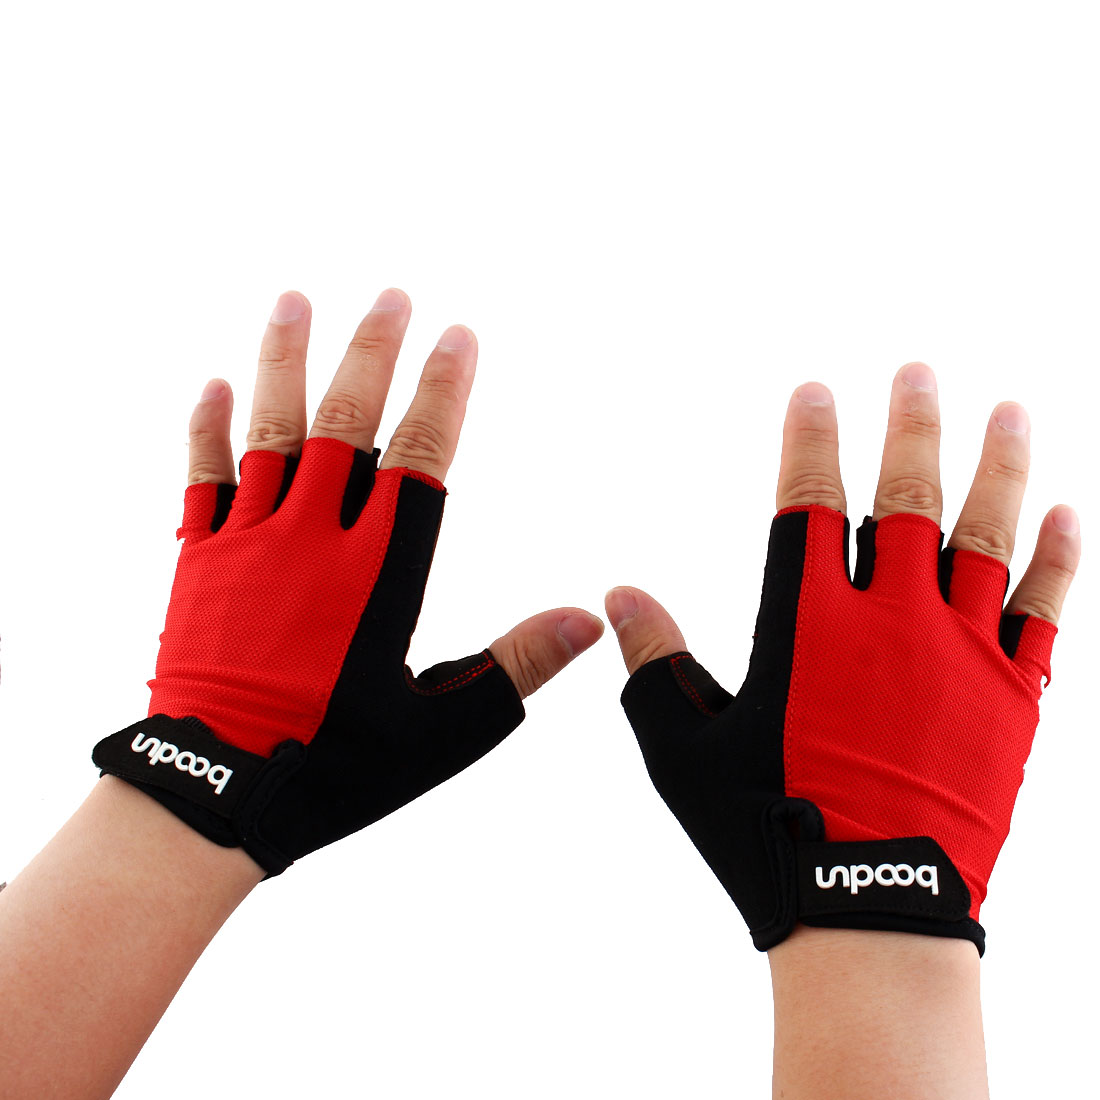 Boodun Authorized Outdoor Cycling Gym Workout Training Weight Lifting Half Finger Gloves Red Size XL Pair for Men Women